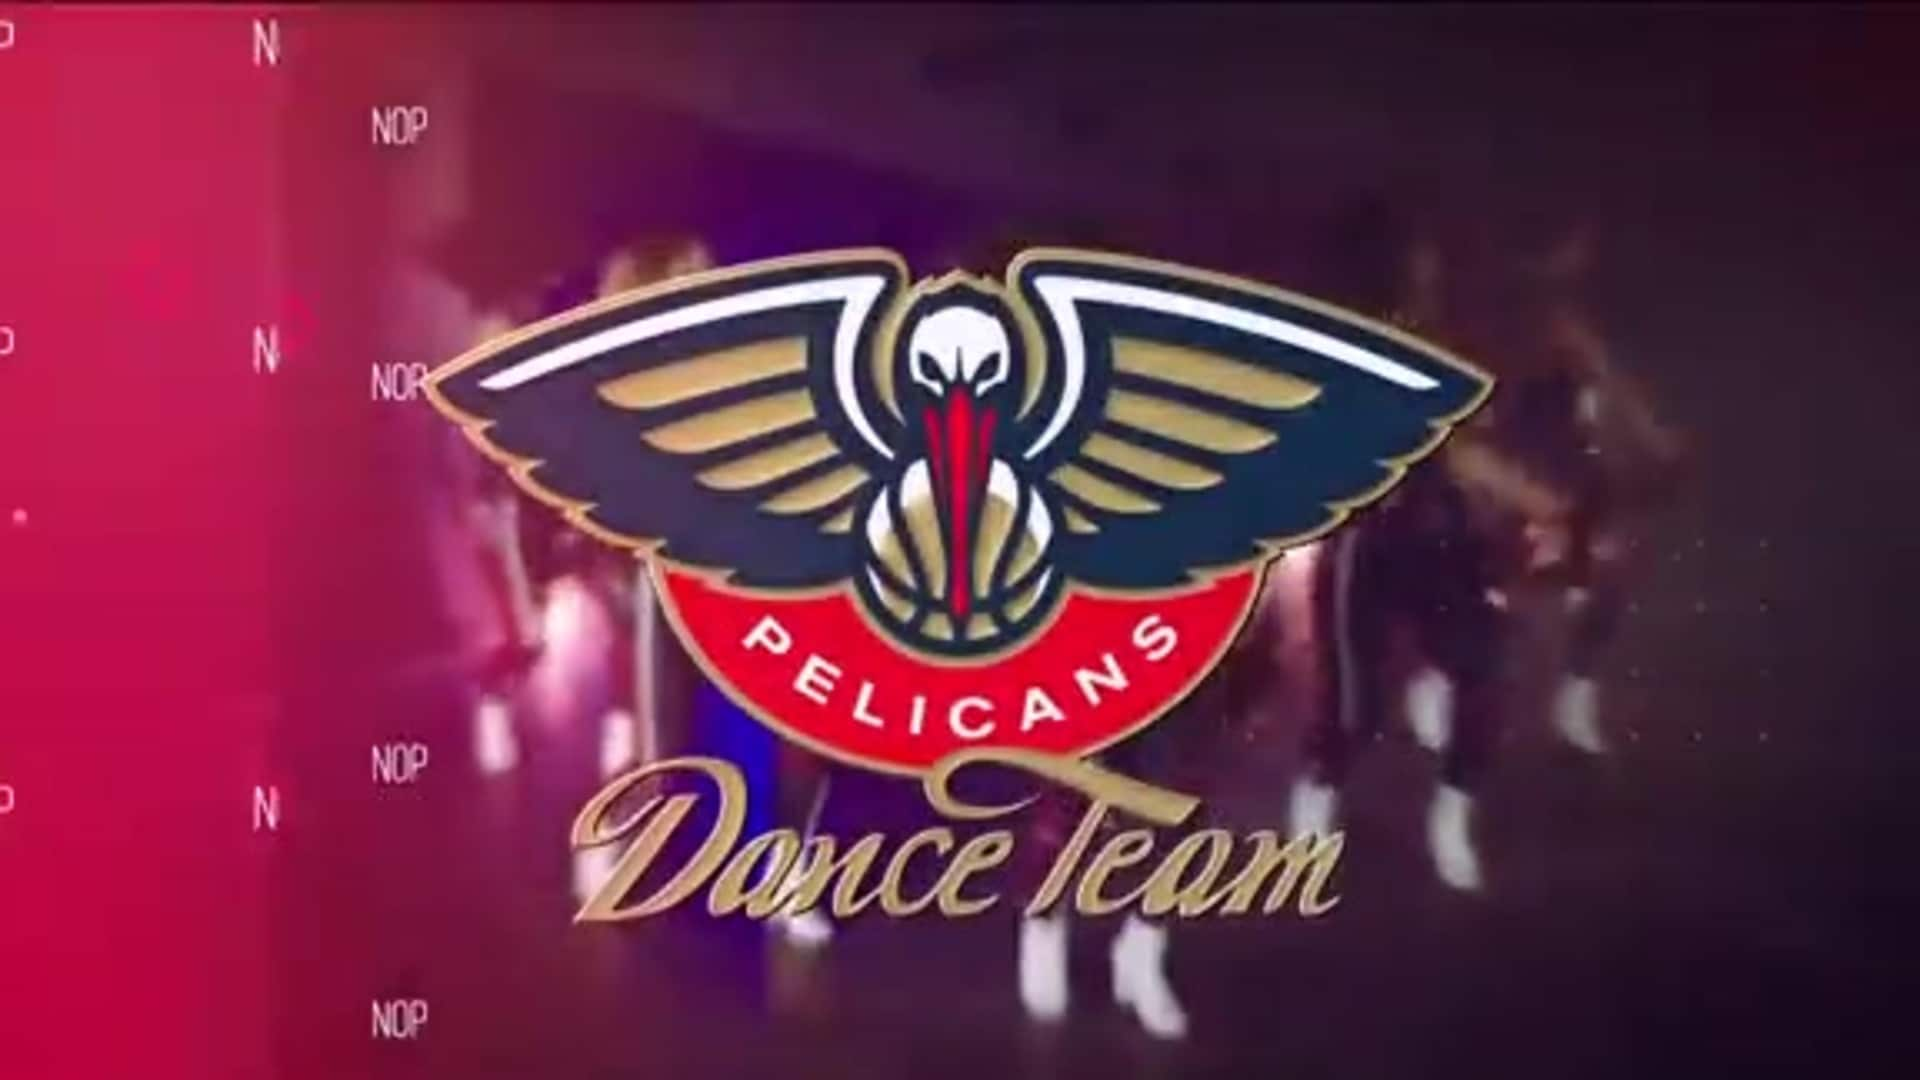 Entertainment: Pelicans Dance Team 3rd quarter performance - December 5 vs. Phoenix Suns